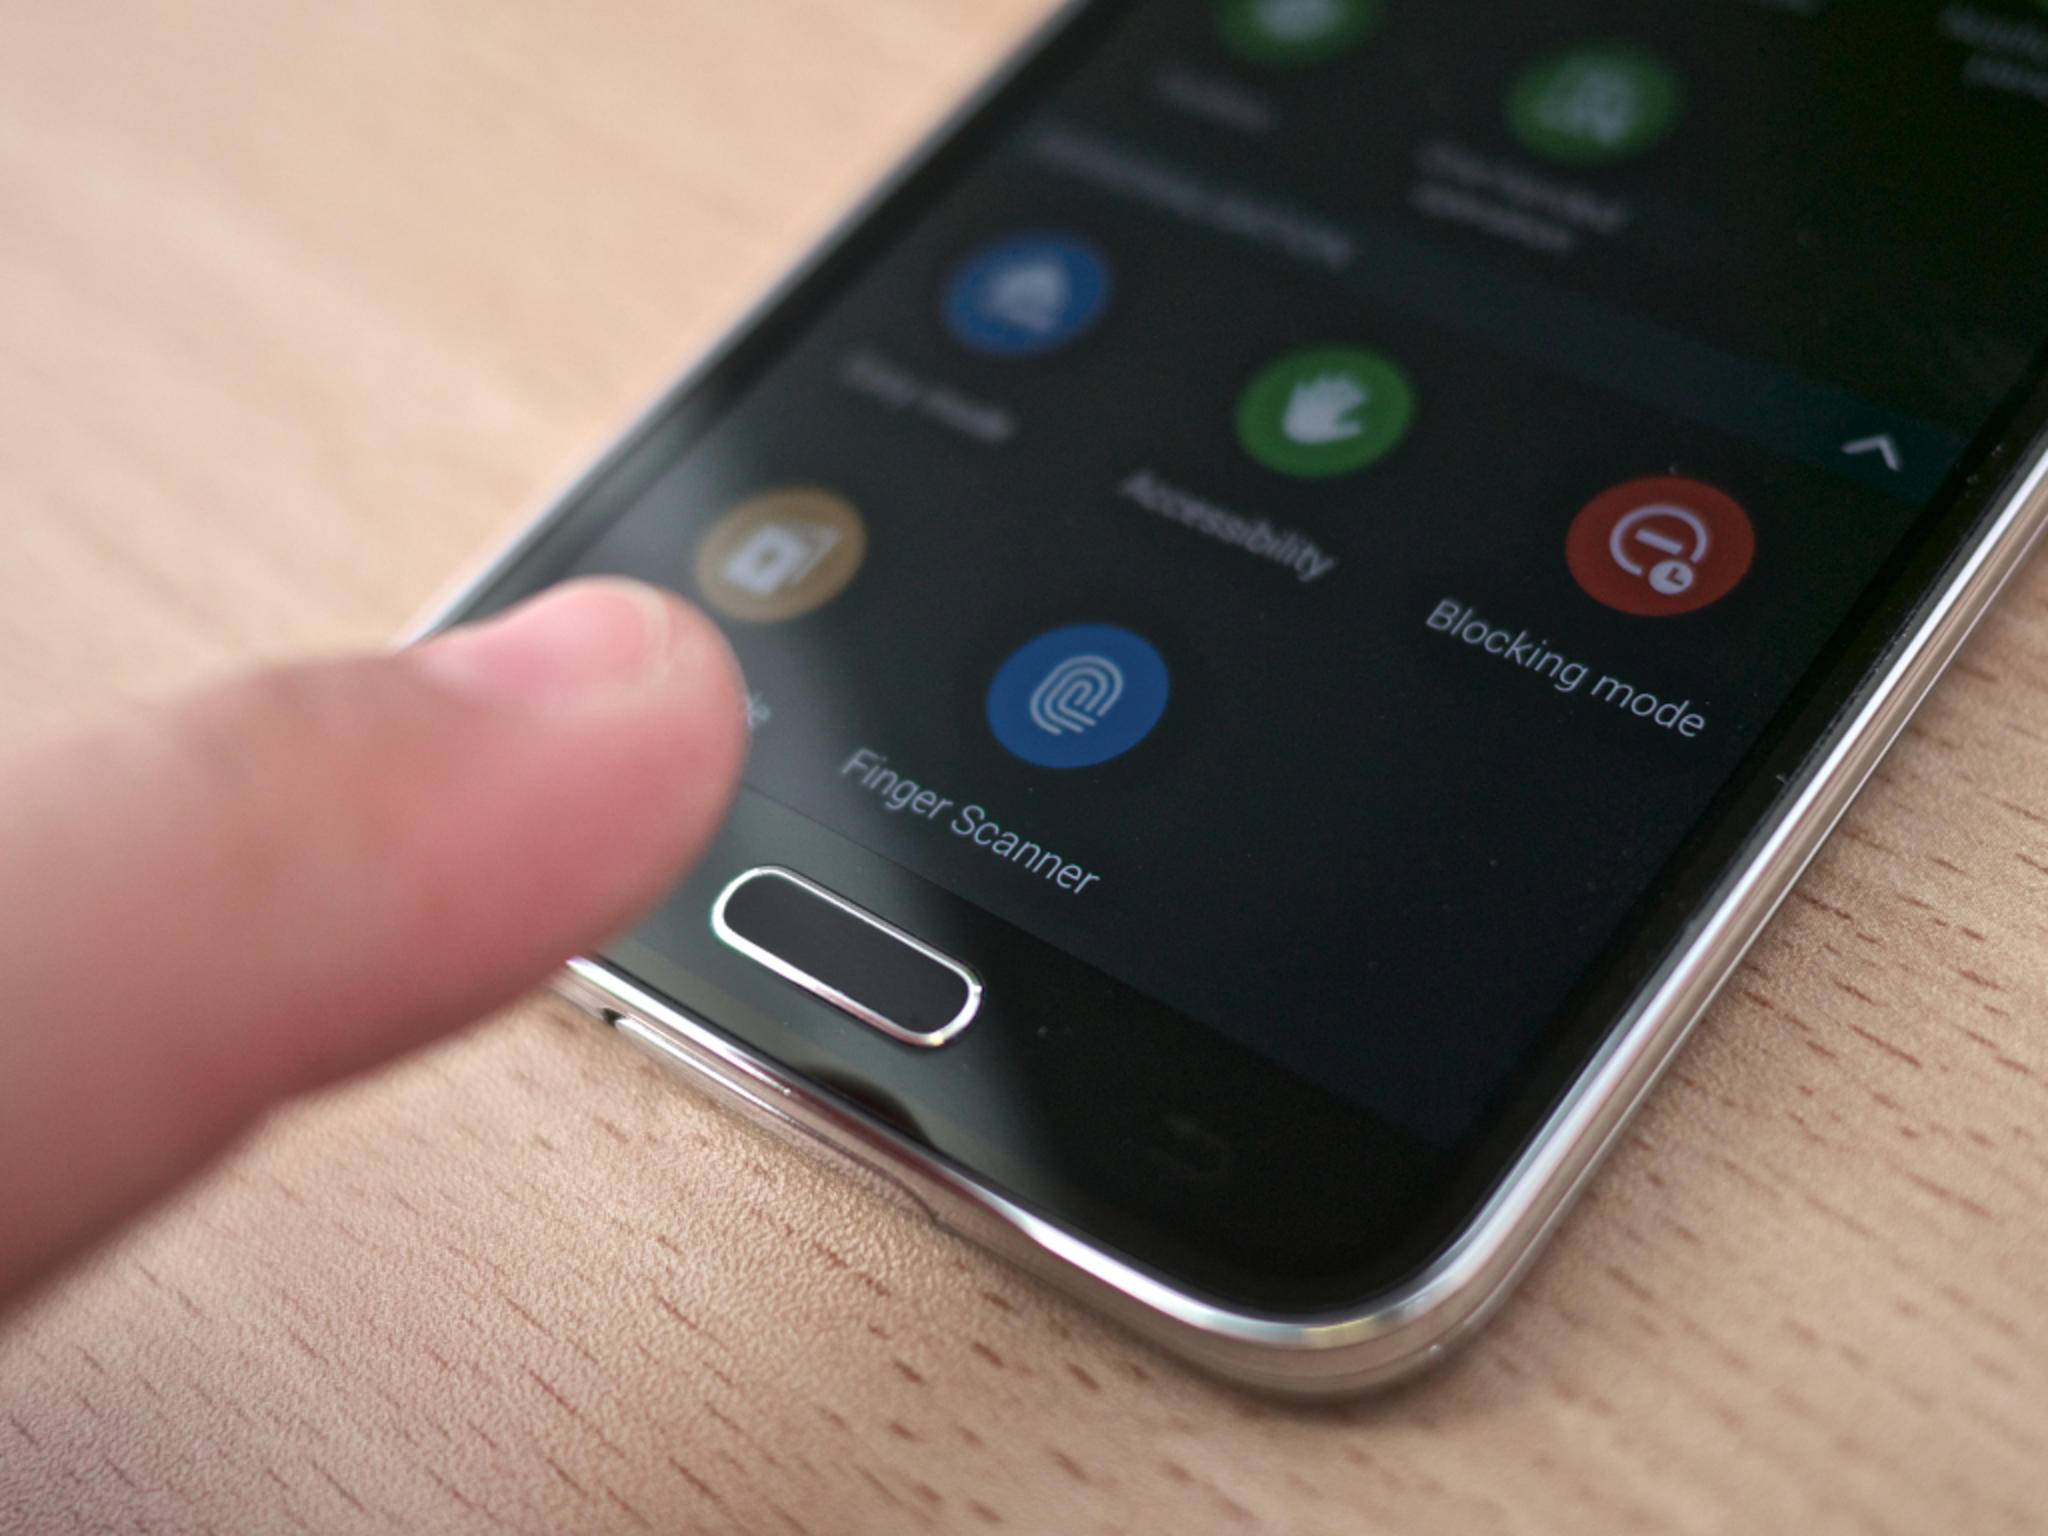 Fingerabdruck-Scanner des Samsung Galaxy S5